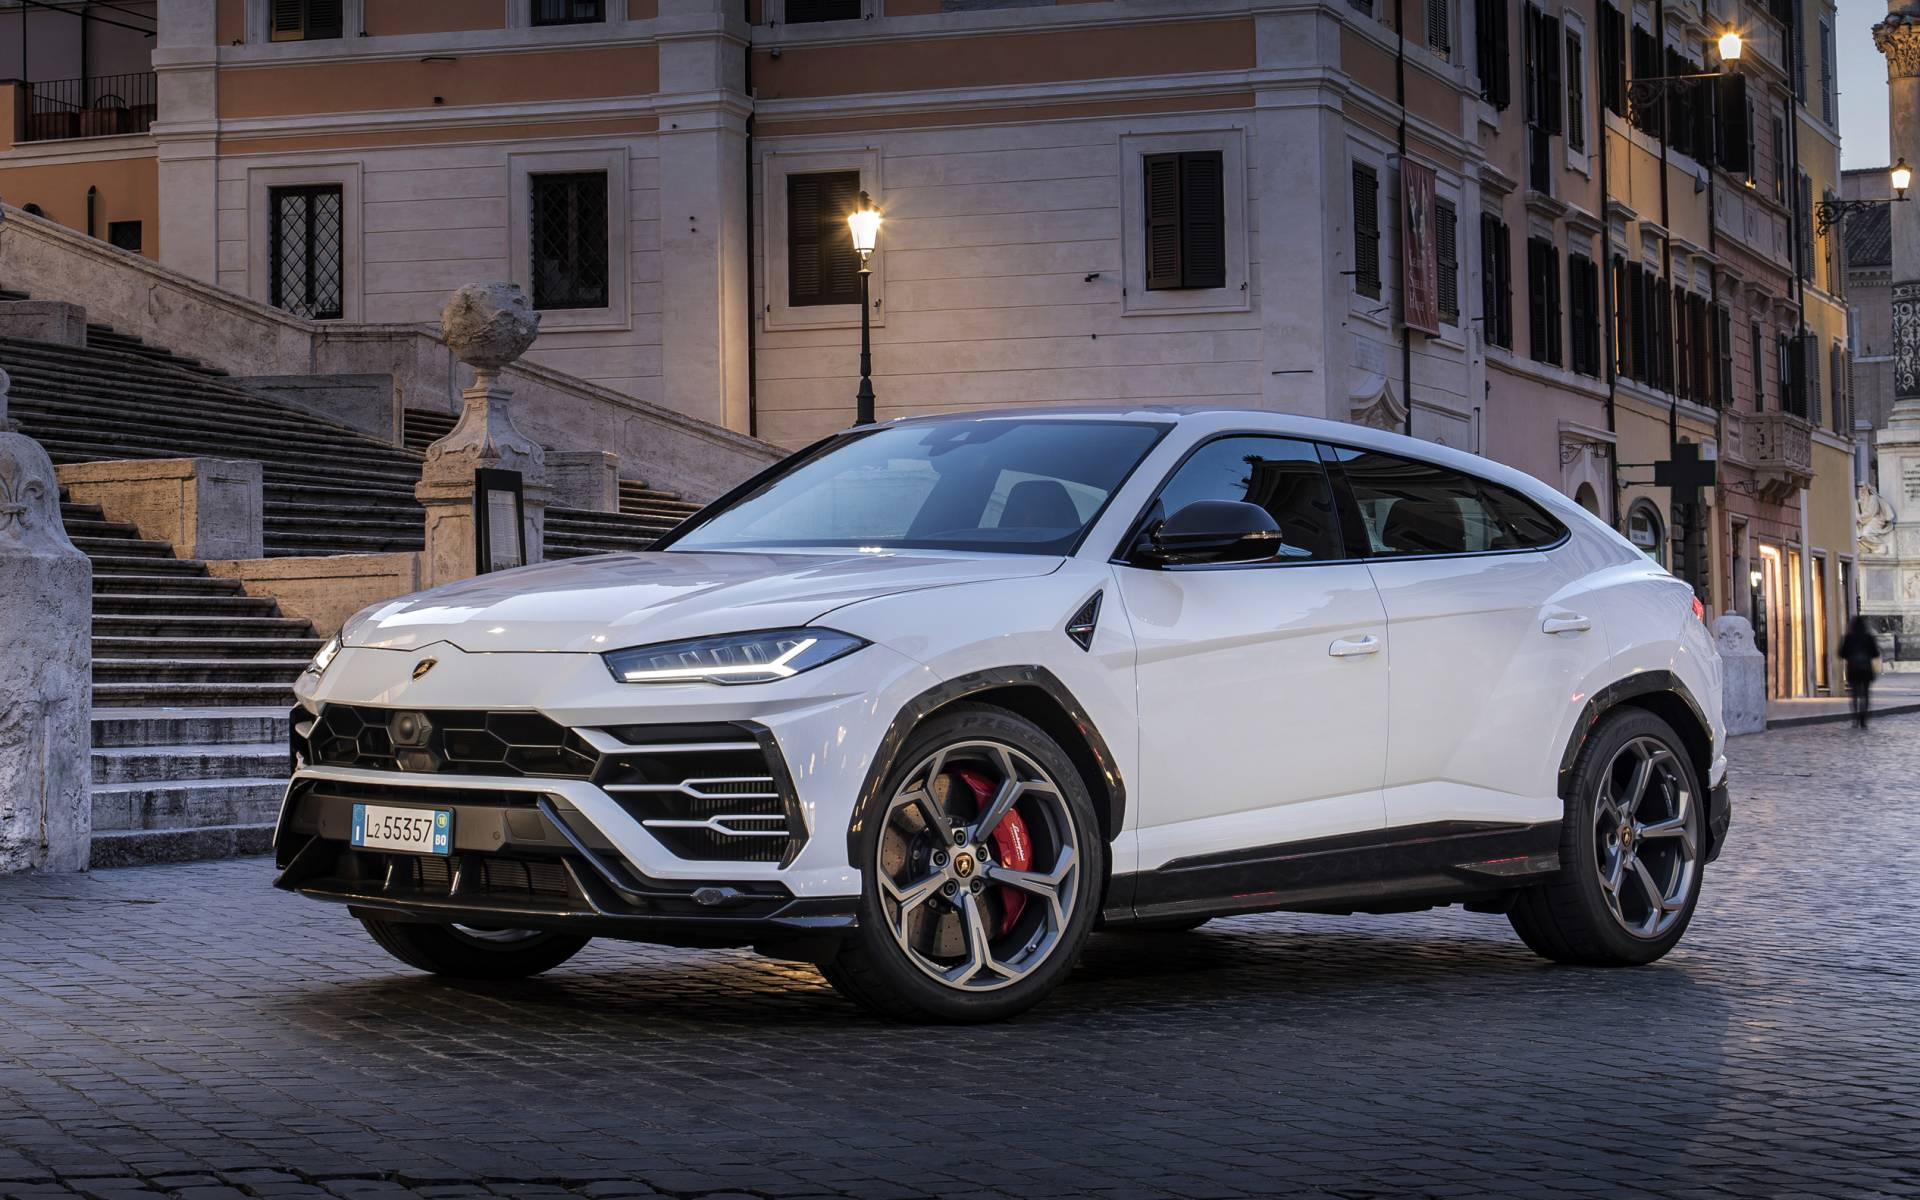 2020 Lamborghini Urus News Reviews Picture Galleries And Videos The Car Guide